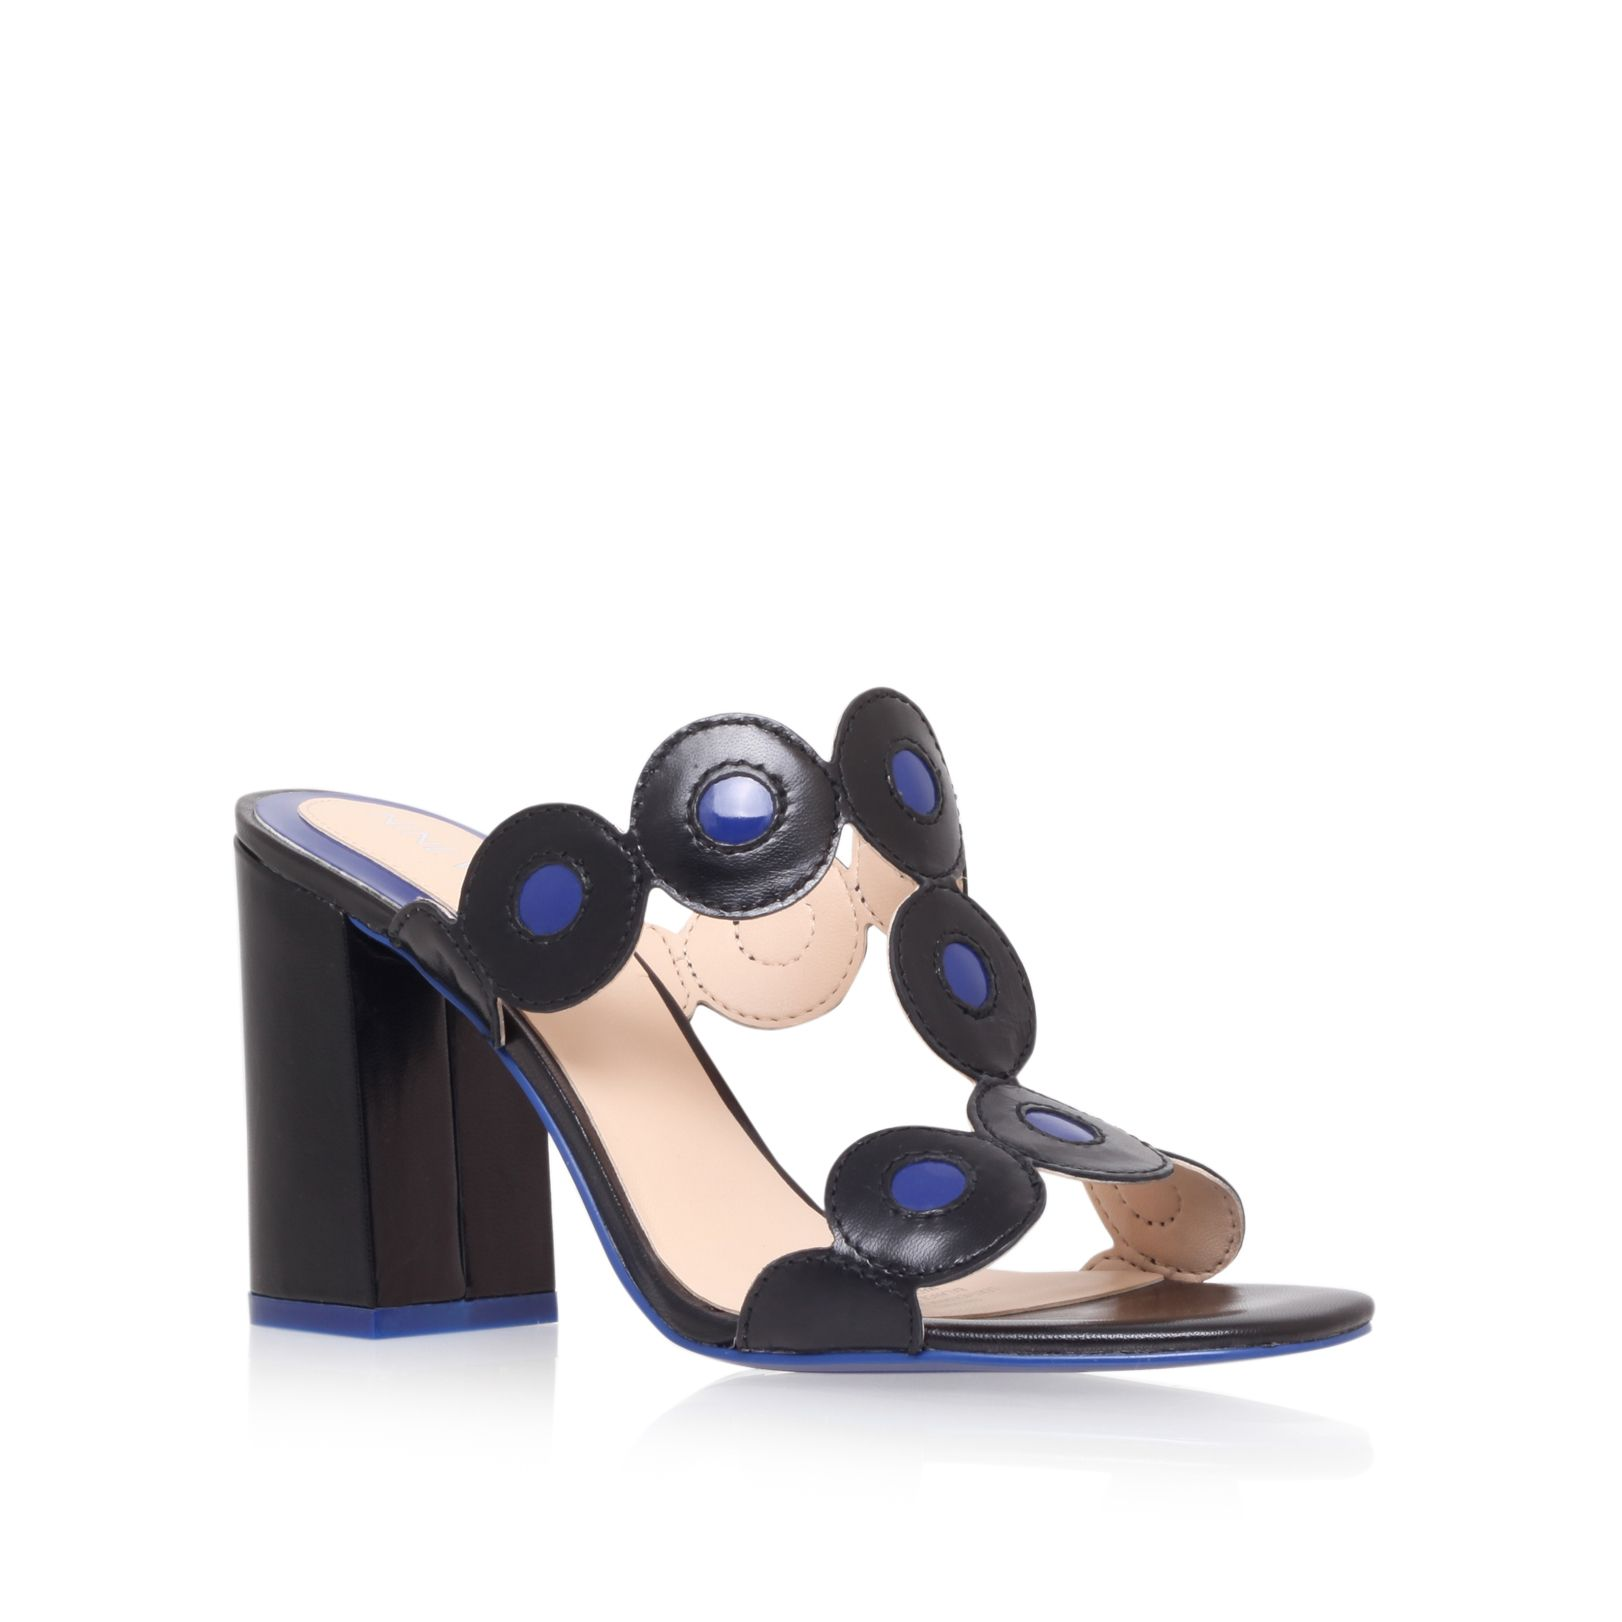 Jamielynn high heel sandals